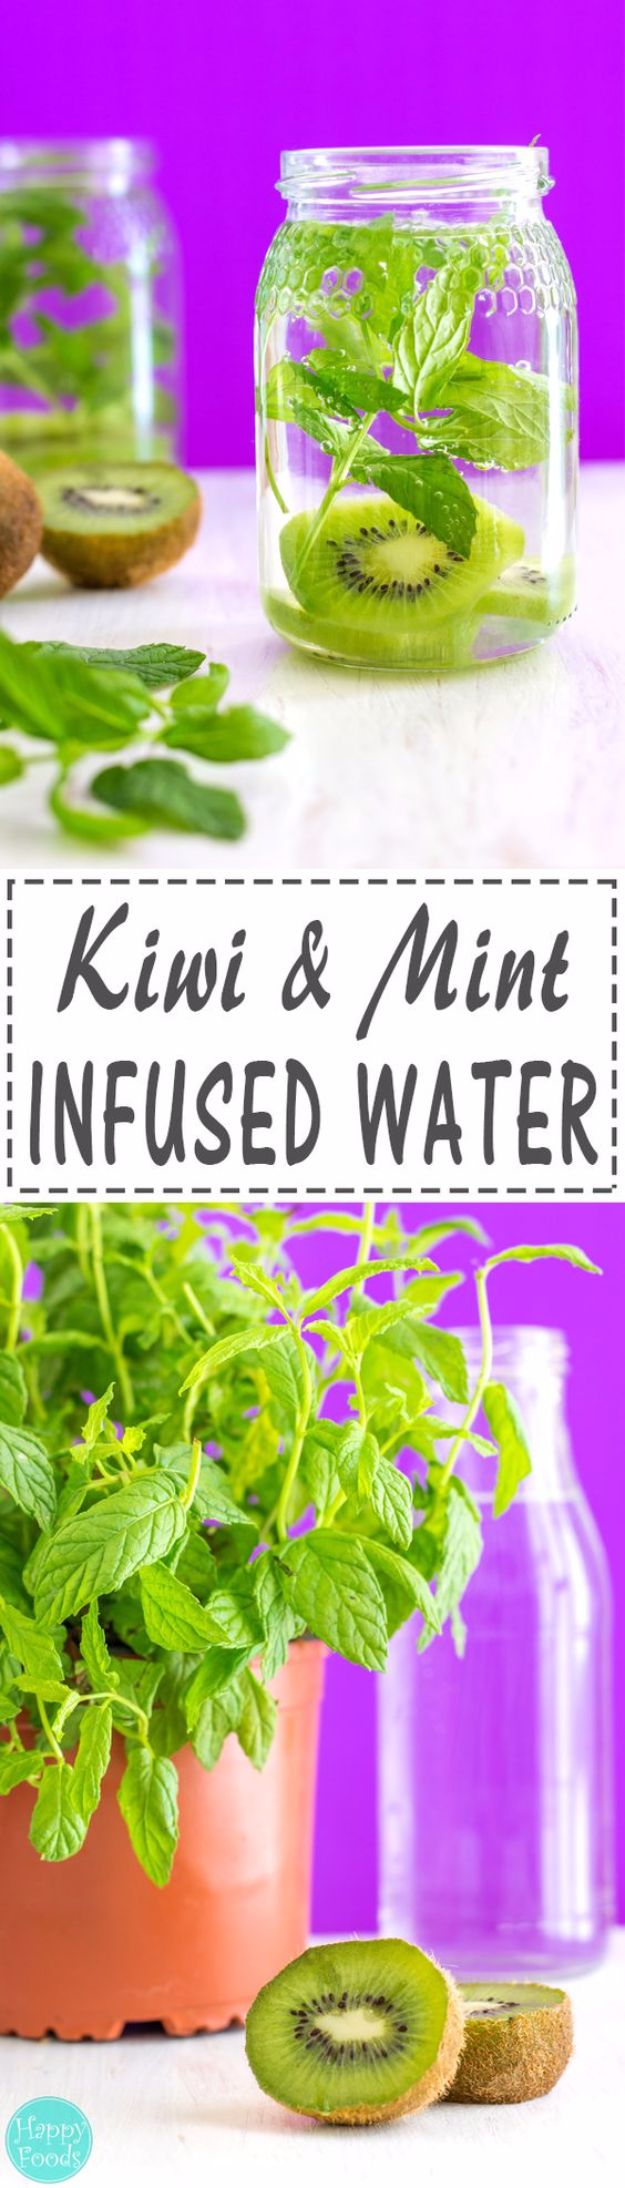 DIY Spa Day Ideas - Kiwi And Mint Infused Water - Easy Sugar Scrubs, Lotions and Bath Ideas for The Best Pampering You Can Do At Home - Lavender Projects, Relaxing Baths and Bath Bombs, Tub Soaks and Facials - Step by Step Tutorials for Luxury Bath Products